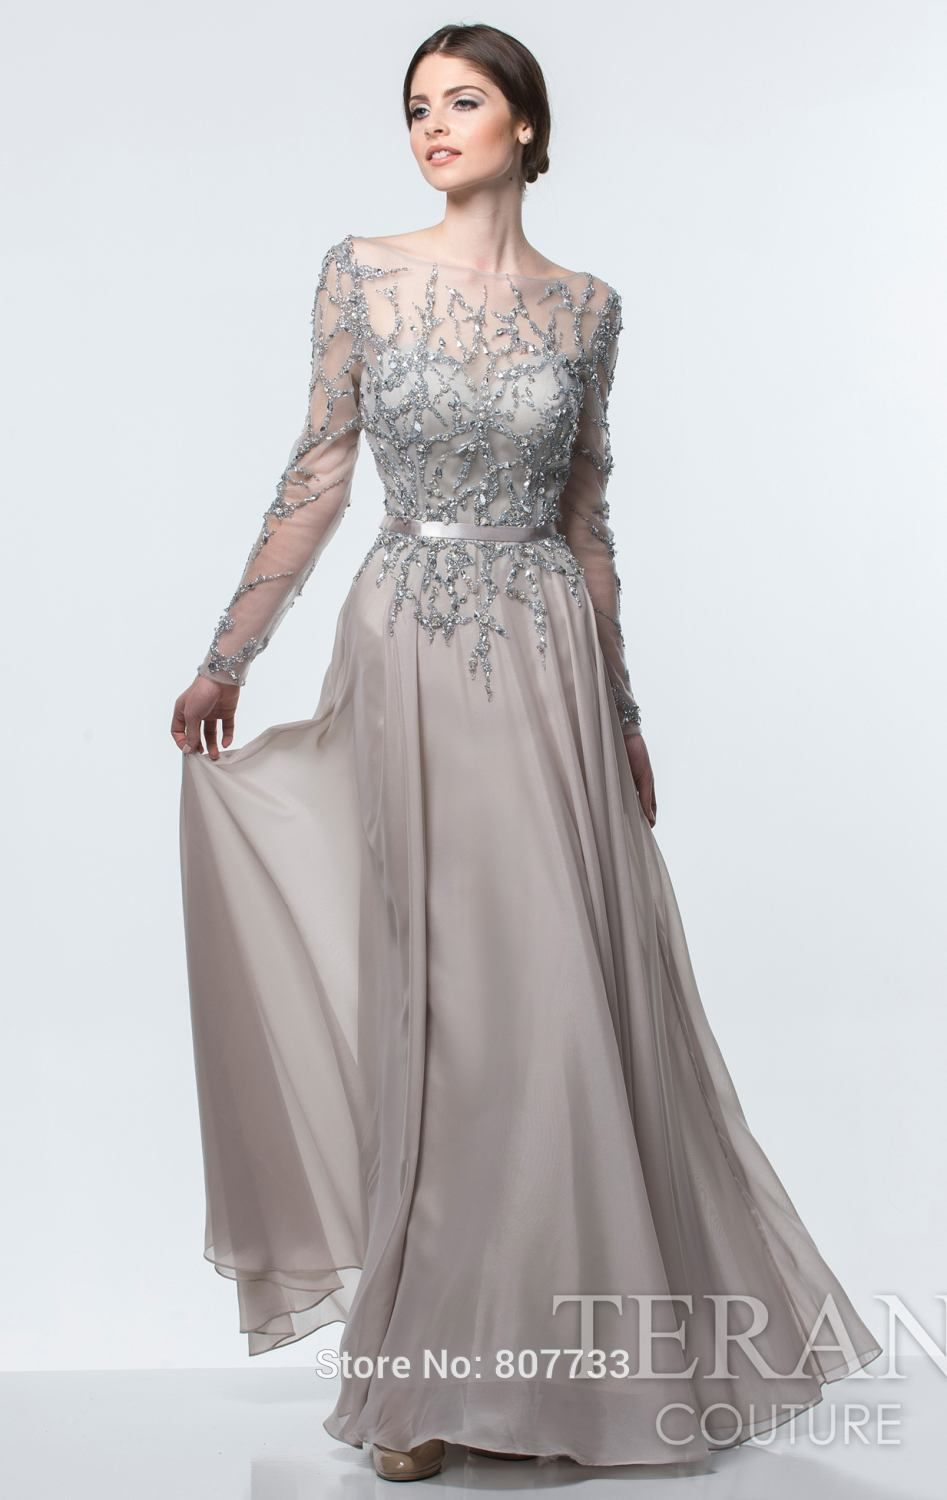 grey long sleeved gown - Google Search | boda CM | Pinterest | Gowns ...